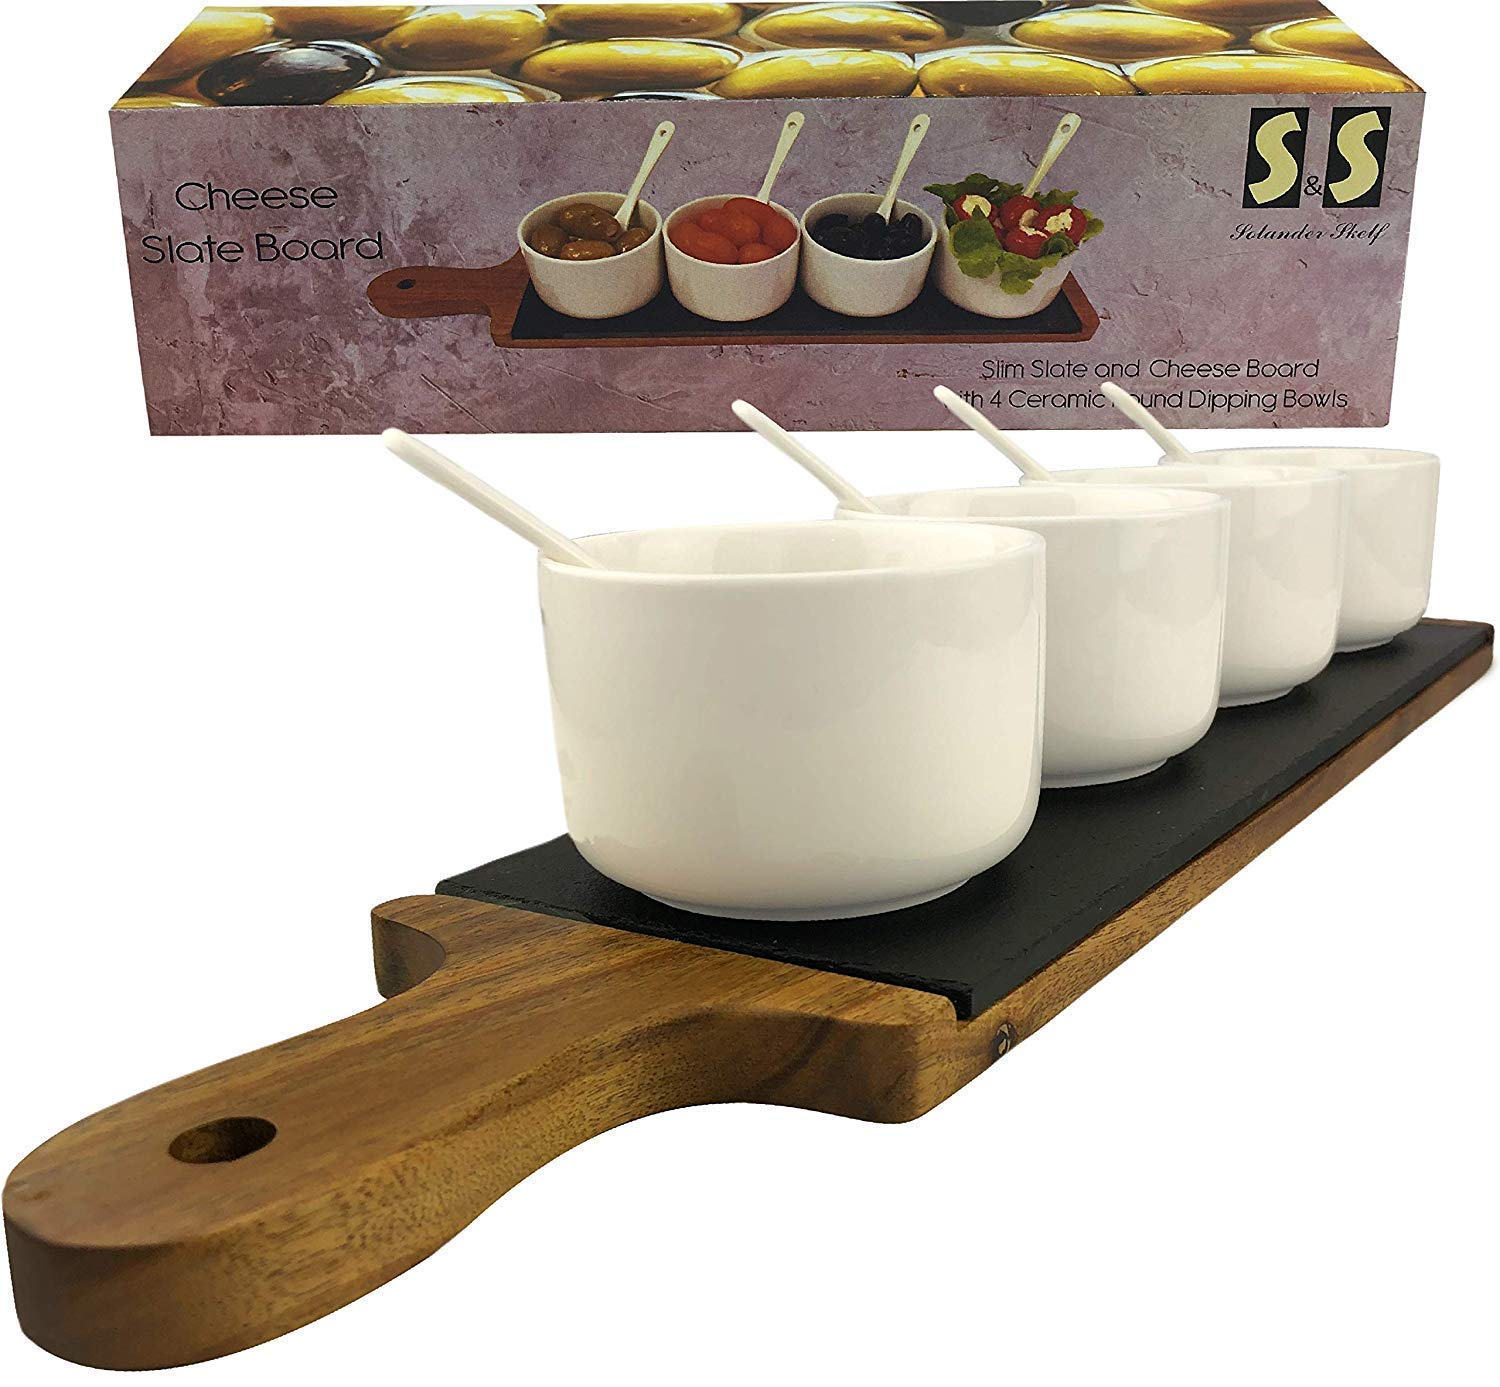 Acacia Wooden Tray Cheese Slate Board Set Large Dipping Square Bowls with Spoons